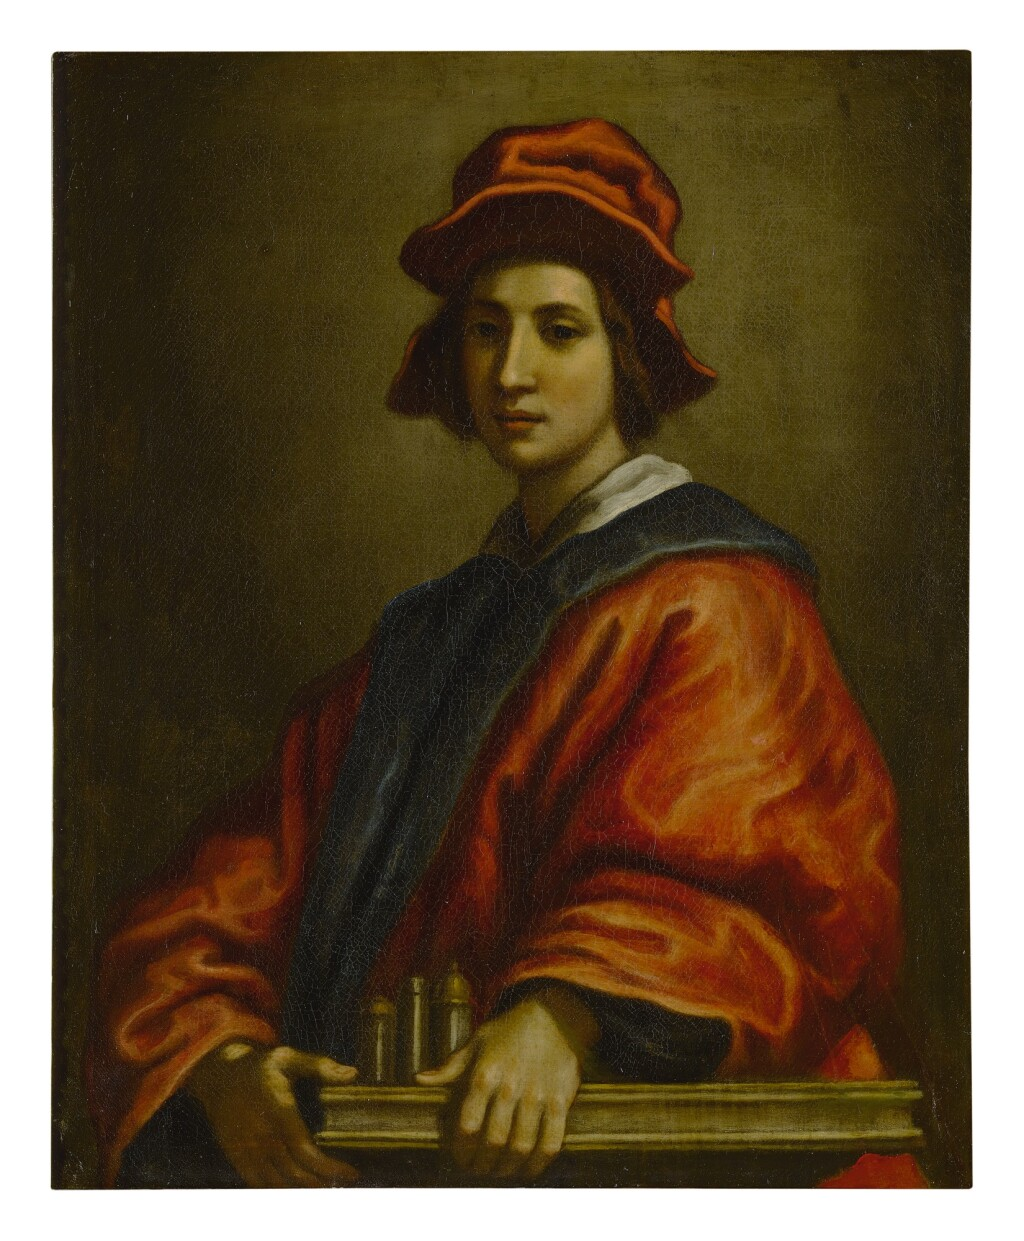 FRANCESCO CURRADI     PORTRAIT OF A YOUNG MAN, POSSIBLY AN ARCHITECT, HALF LENGTH, WEARING A RED HAT AND ROBE